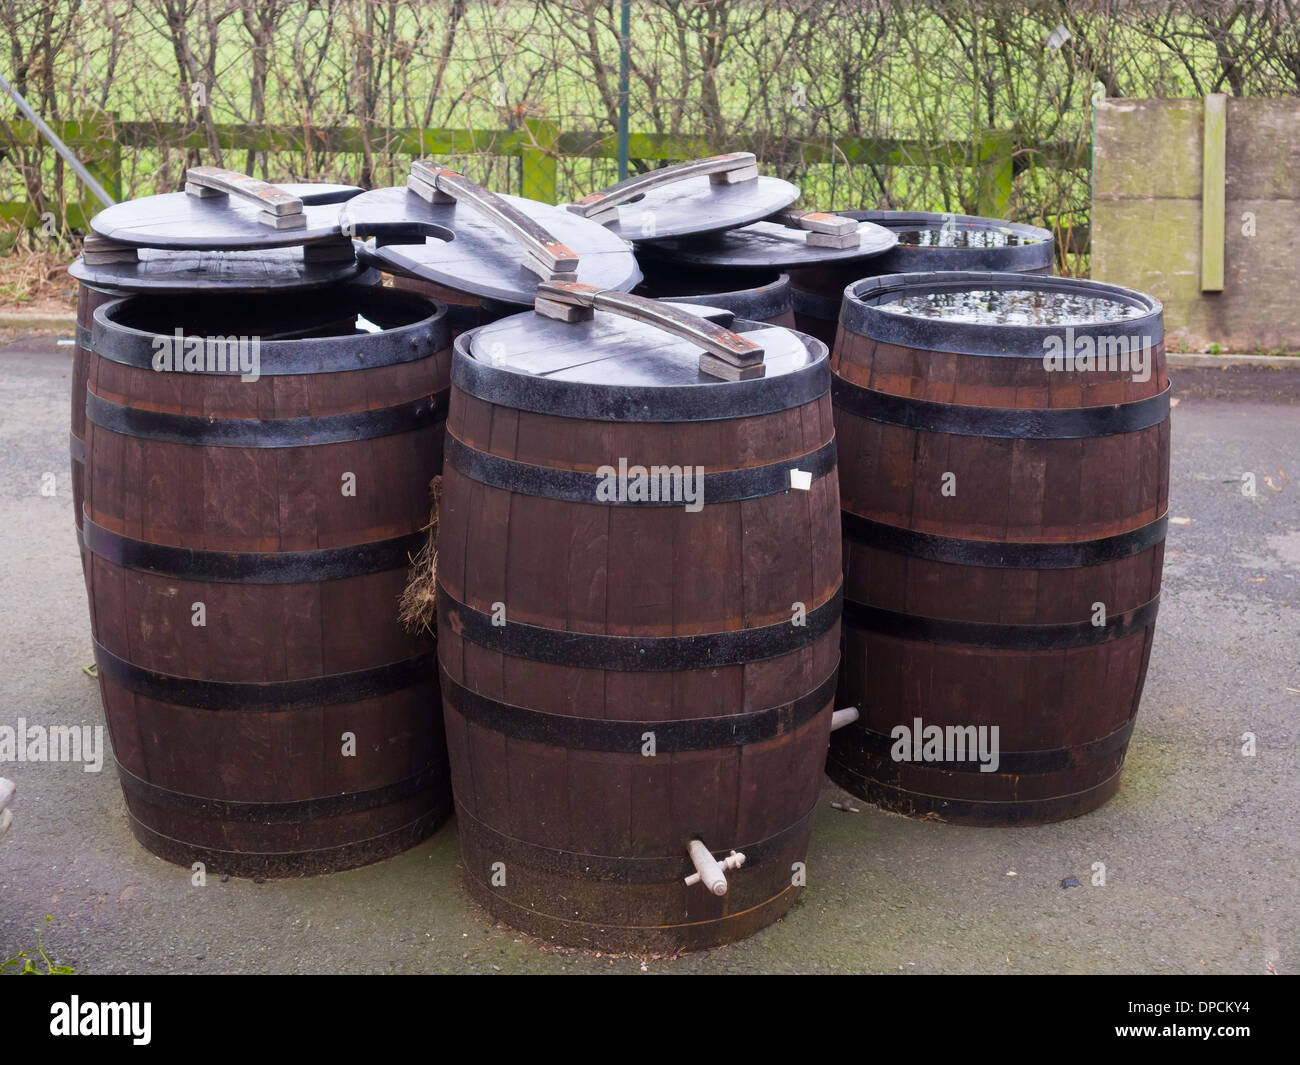 Traditional Wooden Barrels With Iron Hoops For Sale As Water Butts In A  Garden Centre